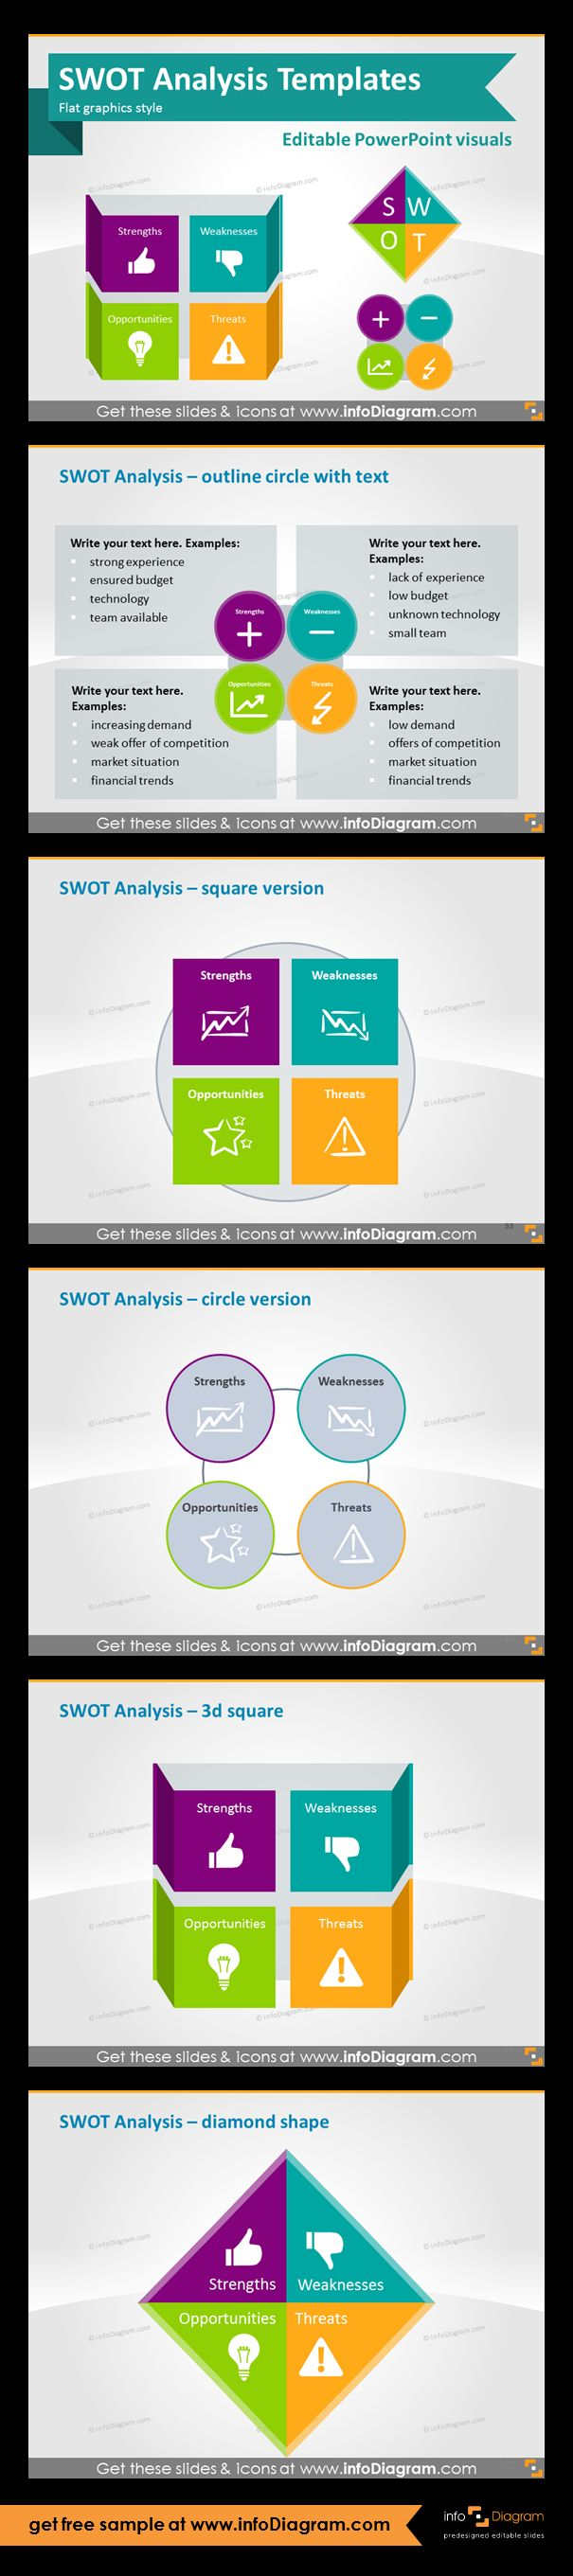 SWOT analysis template diagrams. Square, circle, 3d asquare and diamond version examples. Unique editable icons representing Strengths, Weaknesses, Opportunities, Threats. Fully editable shapes in PowerPoint (color, filling, size - thanks to vector format).